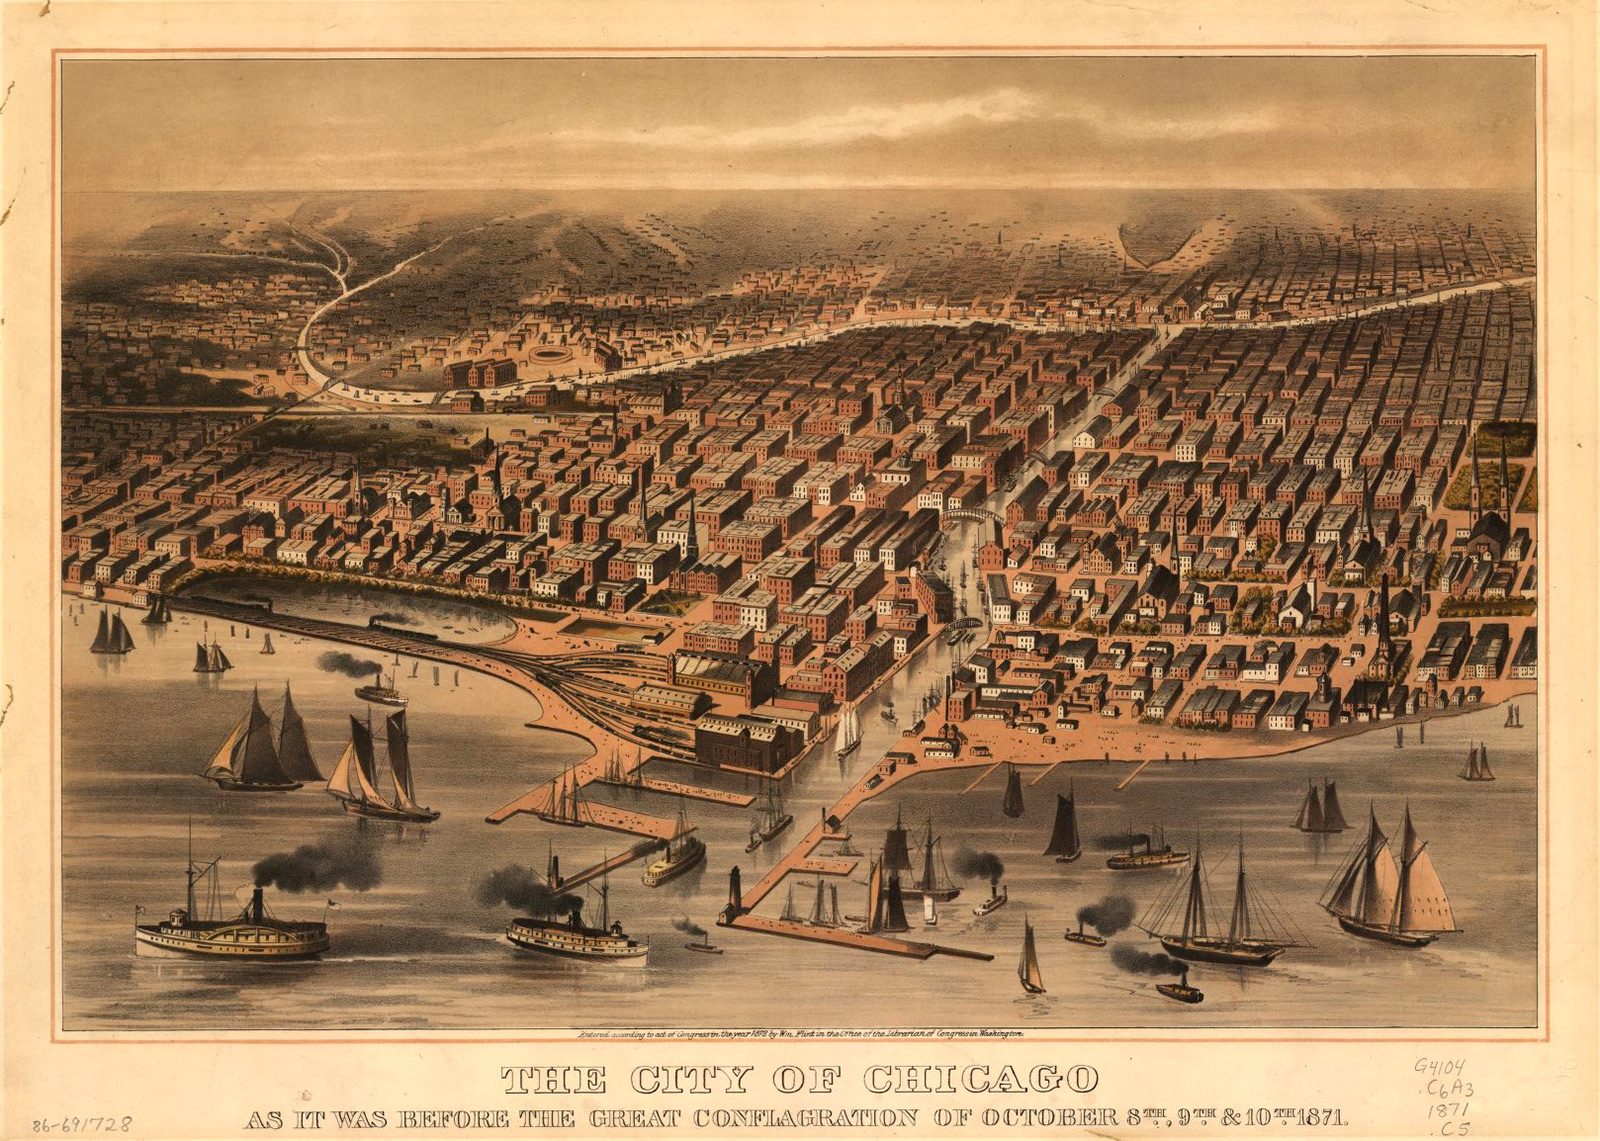 View of Chicago before Fire of 1871